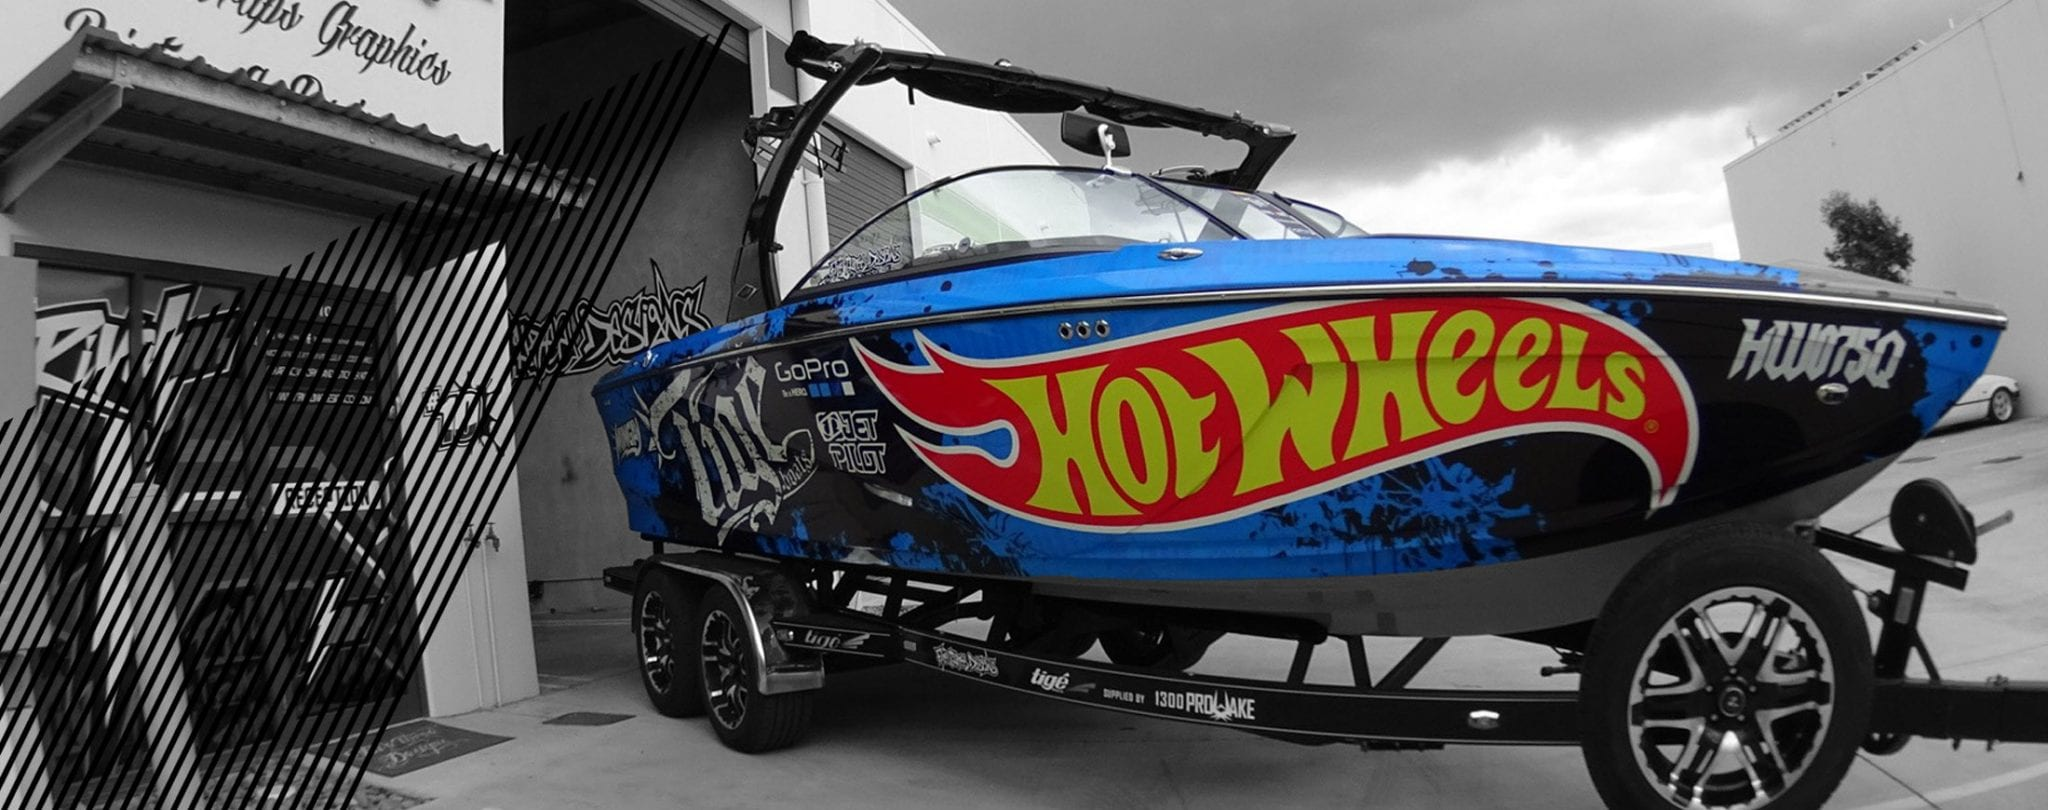 gold coast vinyl boat wraps